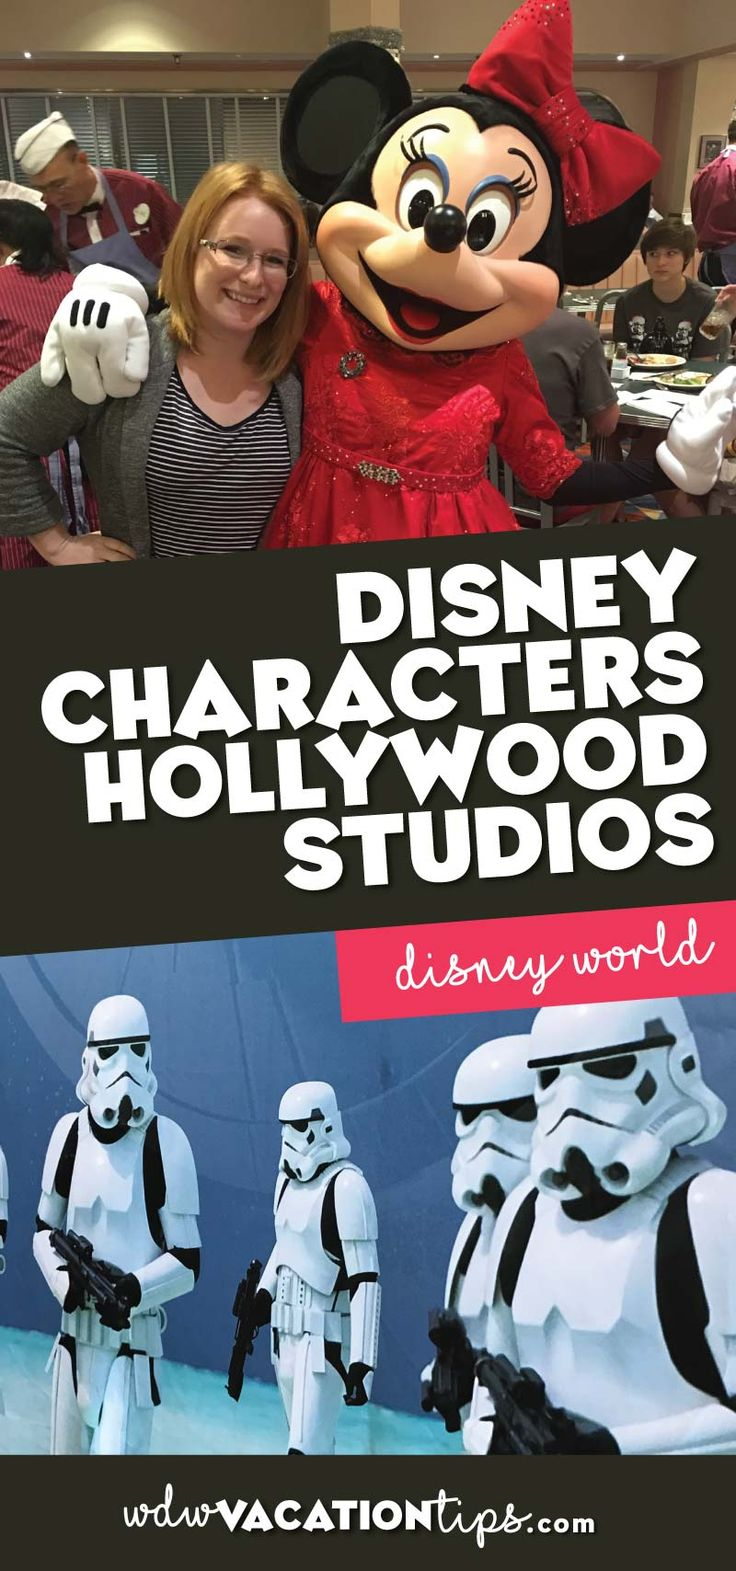 The Disney characters at Hollywood Studios in Walt Disney World plus tips and trick for creating memorable moments with Disney characters.